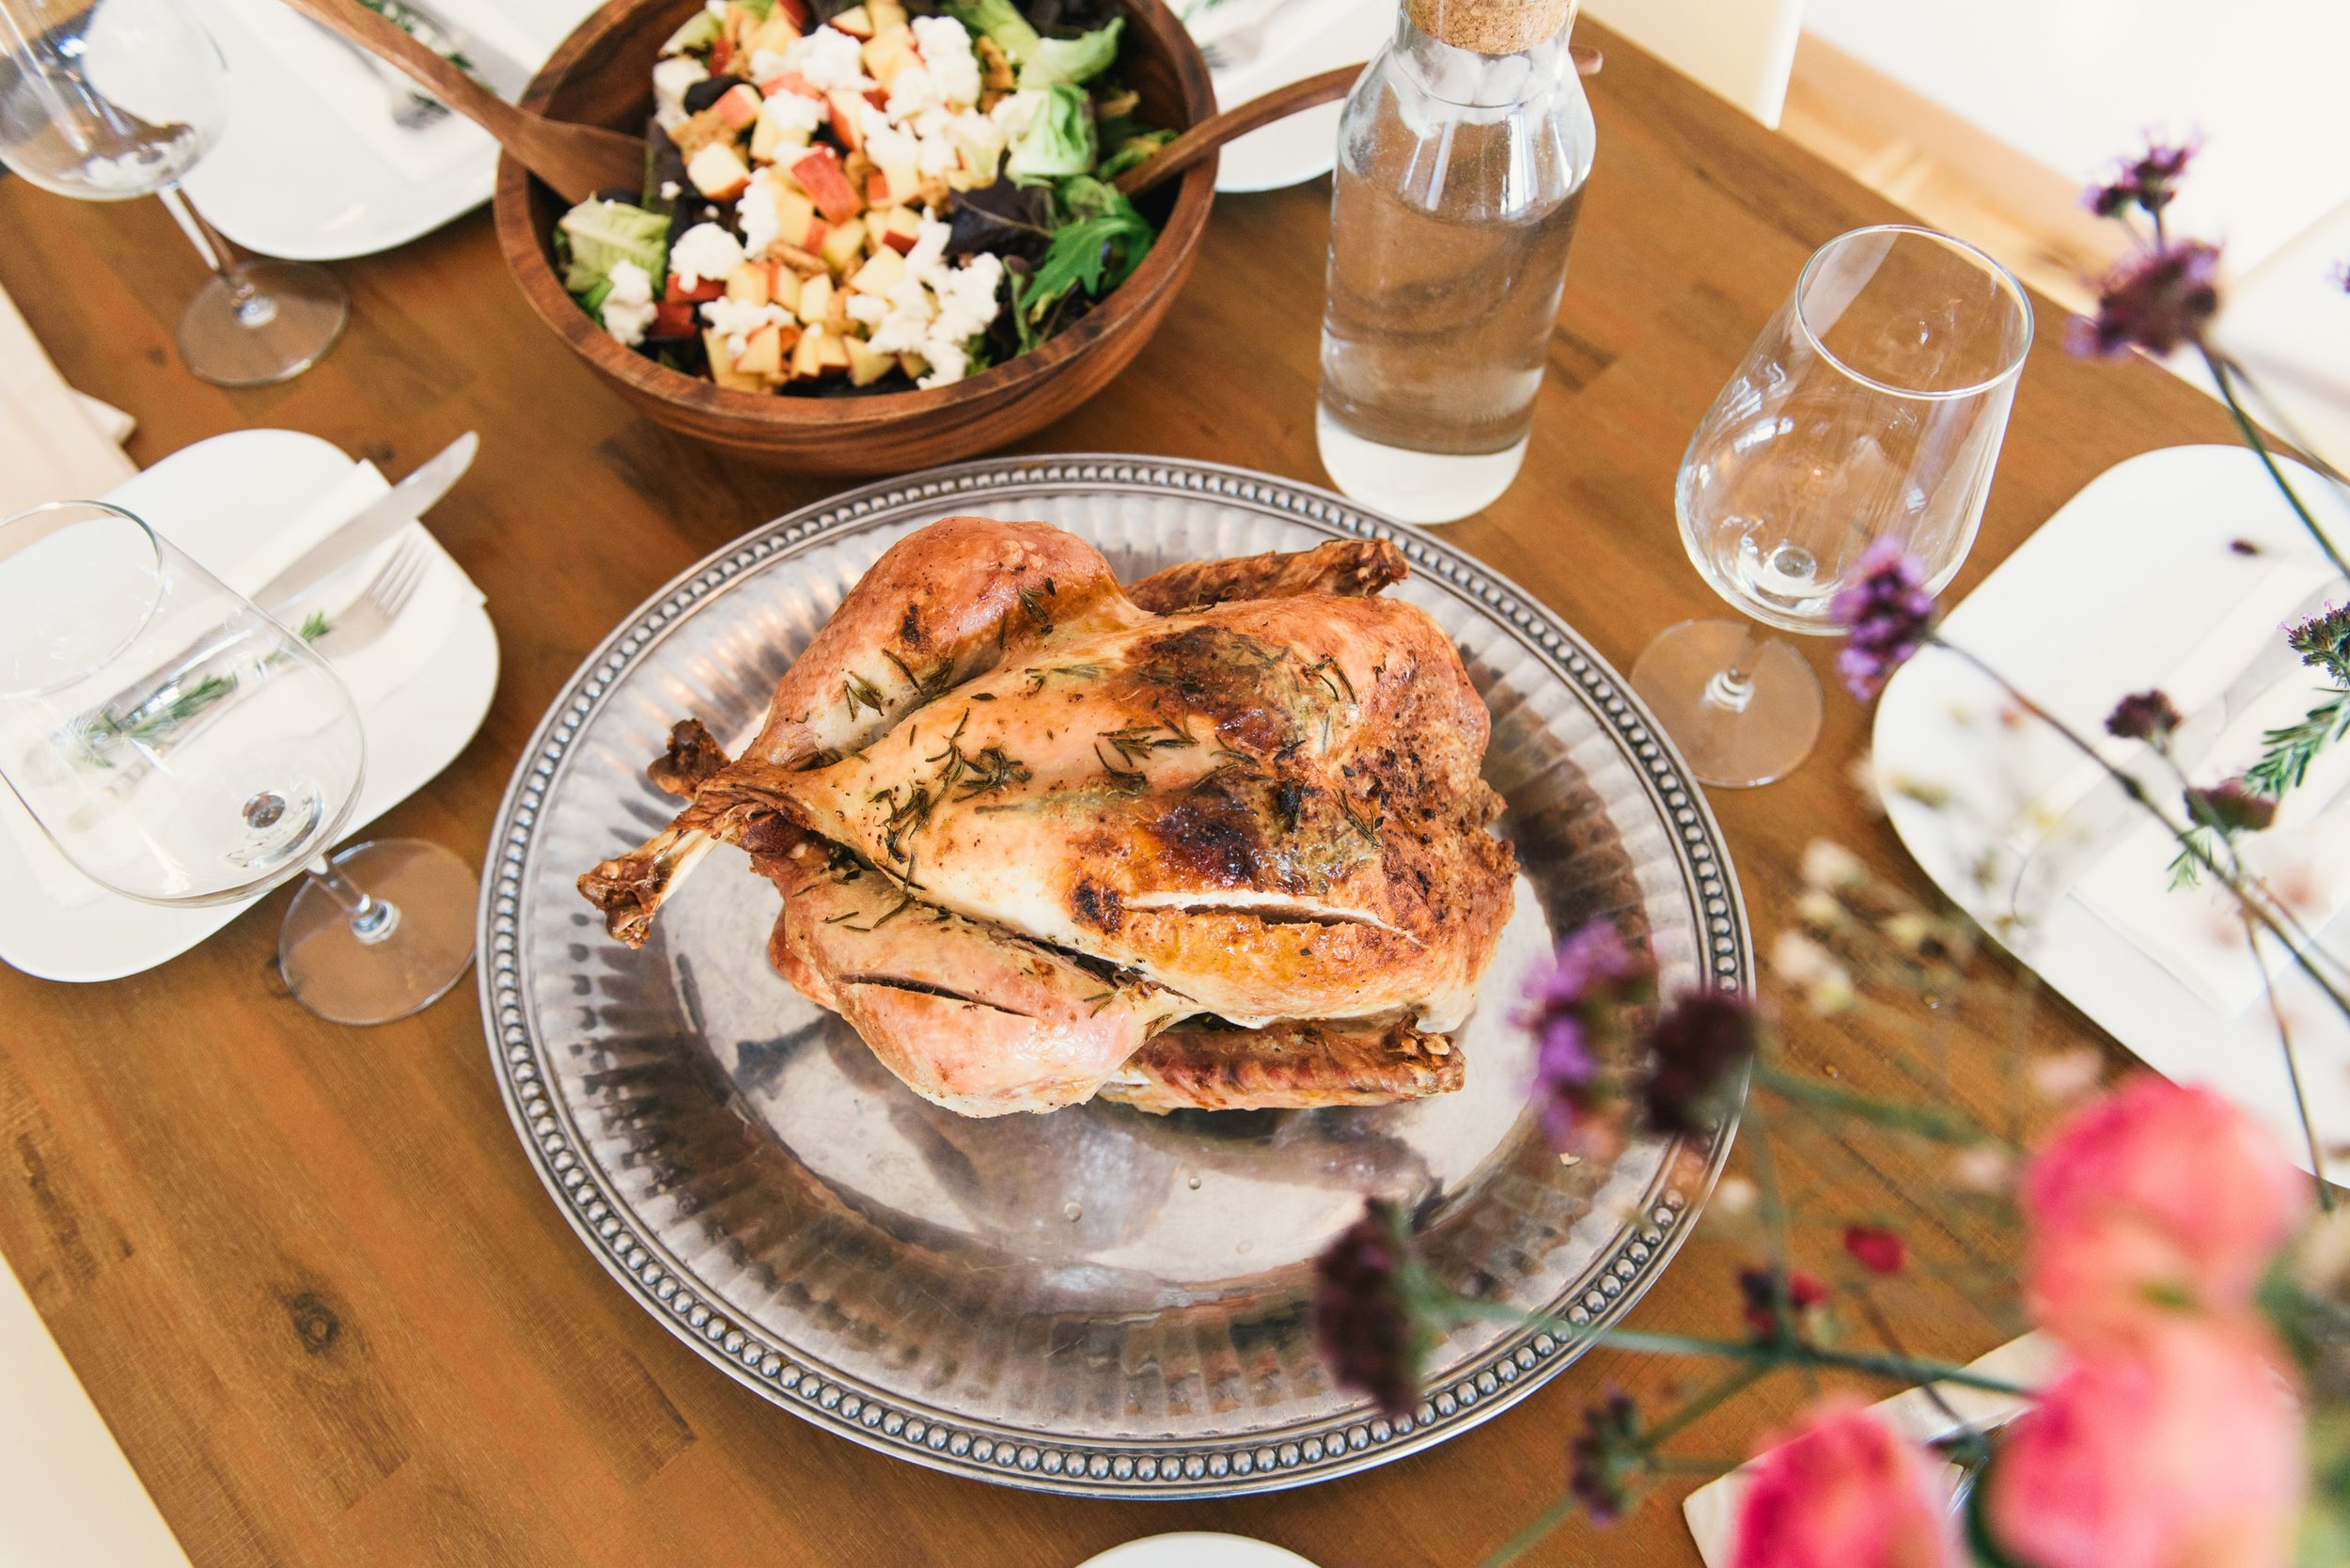 Thanksgiving Brunch - Thursday, November 2811:00AM - 3:00PMFeaturing a lavish array of festive and classic holiday favorites, save the date for Thanksgiving brunch at Flourish. Click to view menu or for reservations.For reservations please call 480-333-1880 or visit opentable.com.